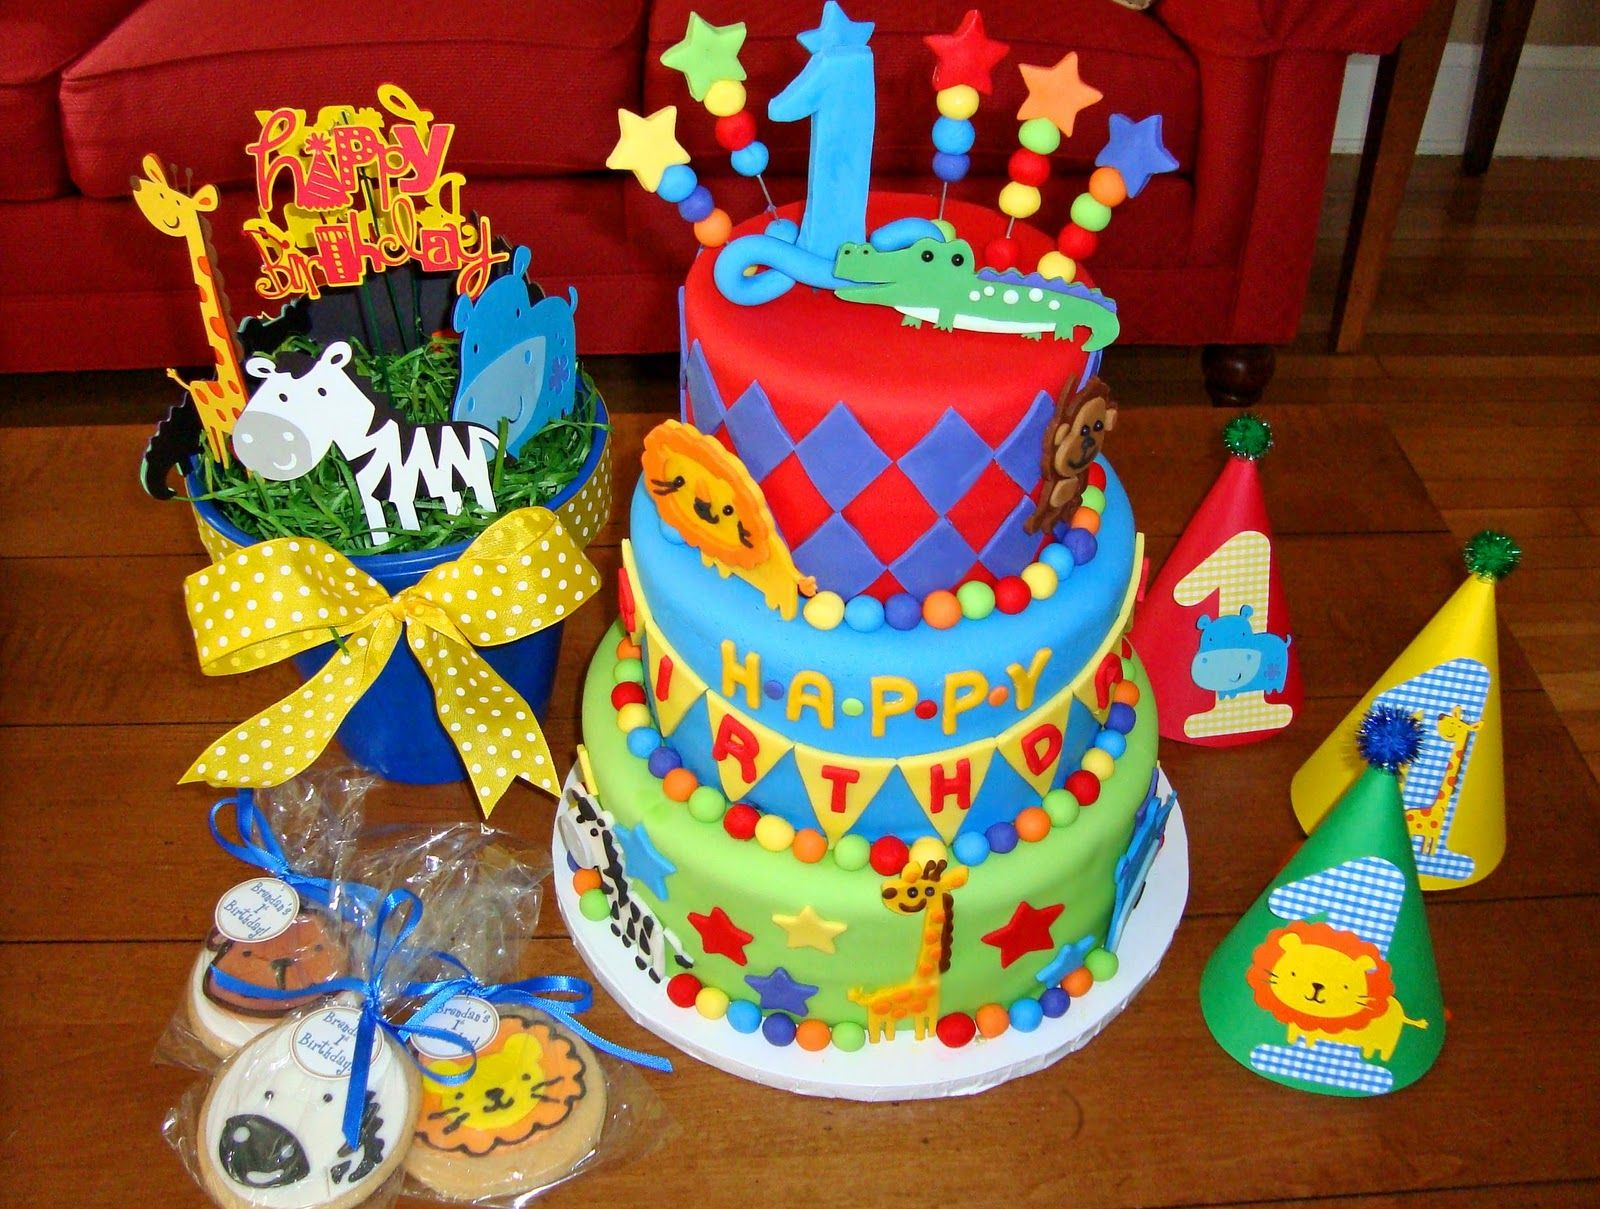 Birthday Cake Ideas For Baby S First Birthday : baby boys first birthday cakes Sugar Butter Baby: Baby s ...